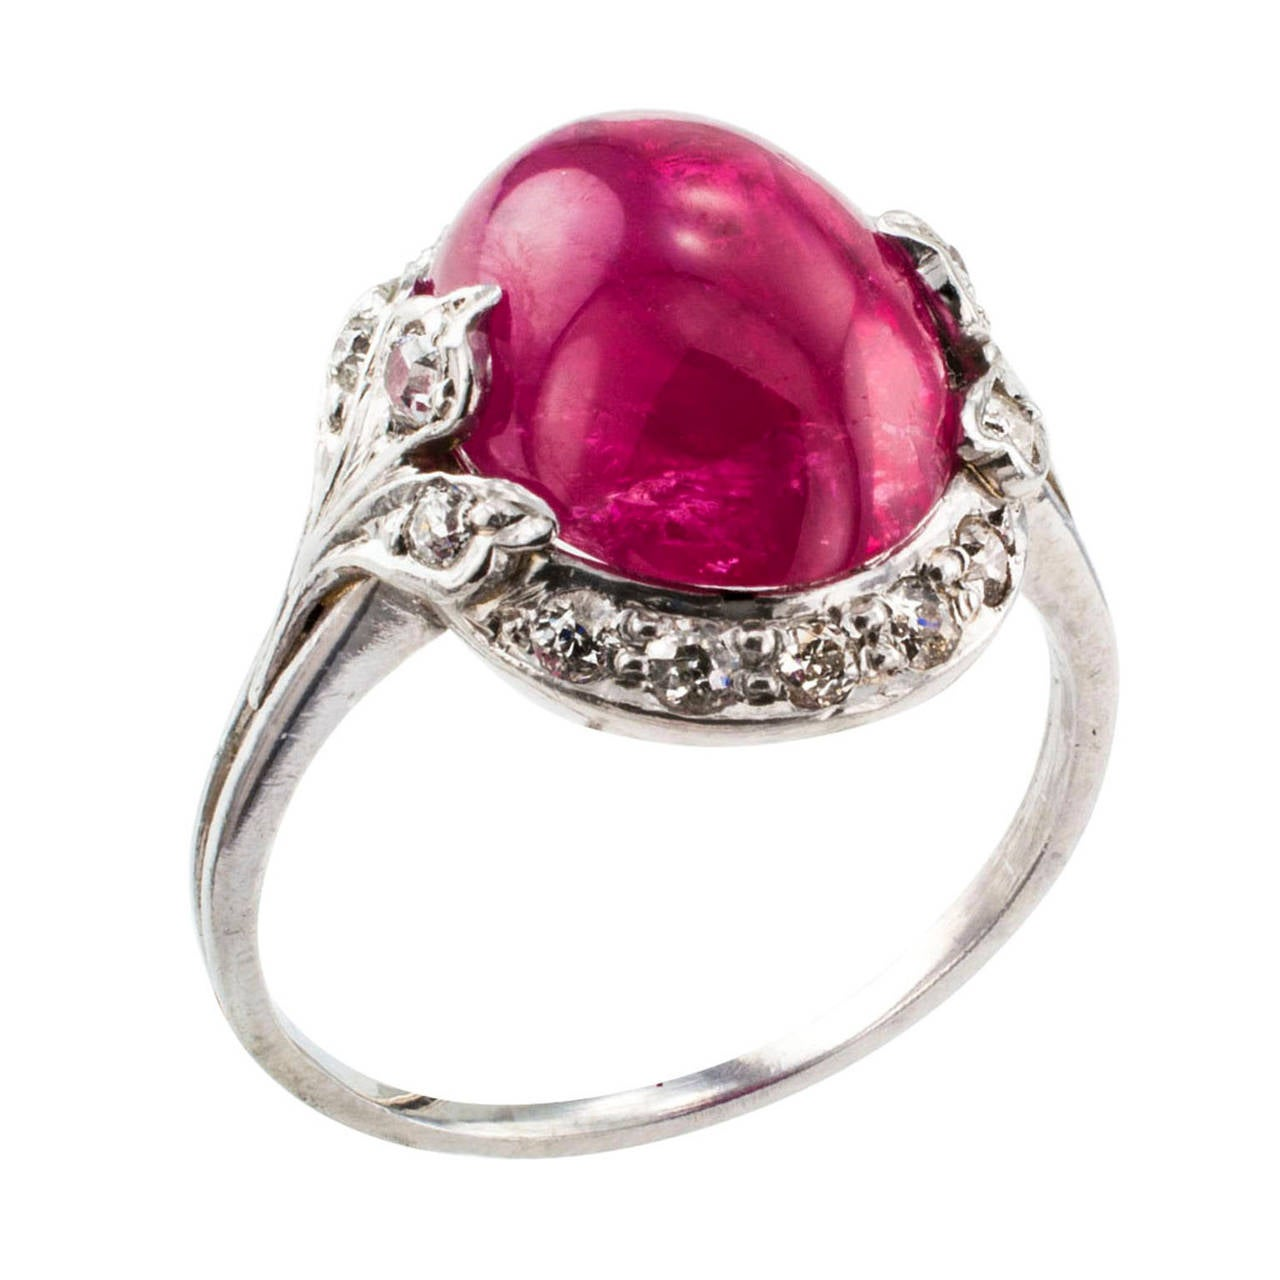 Women's Art Deco Cabochon Ruby Diamond Platinum Ring For Sale